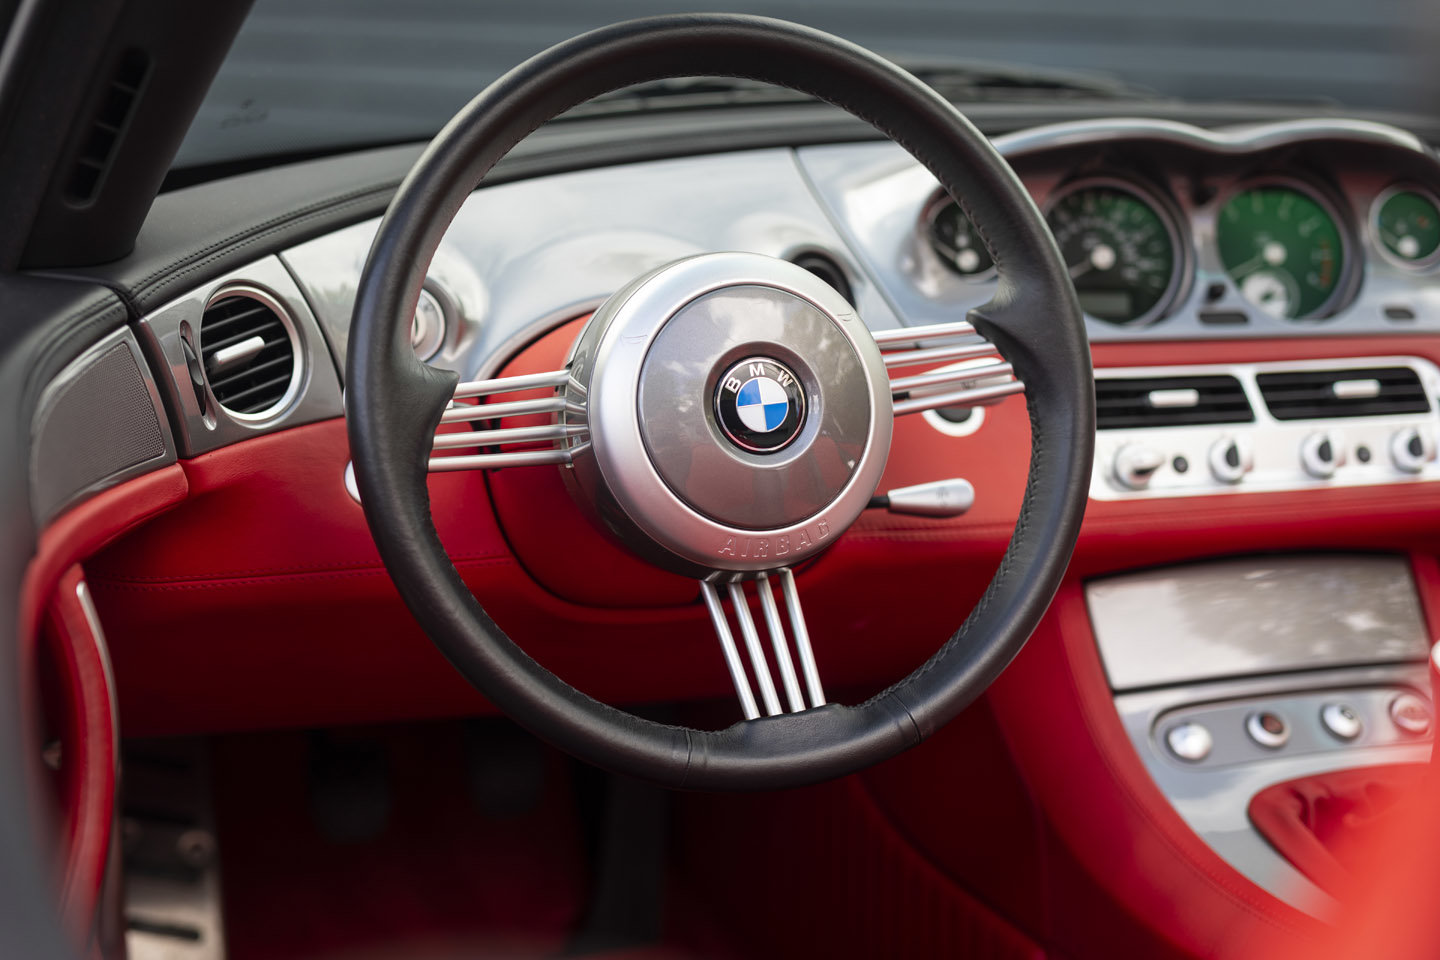 2001 BMW Z8 Roadster ONLY 10500 MILES UK CAR For Sale (picture 15 of 22)